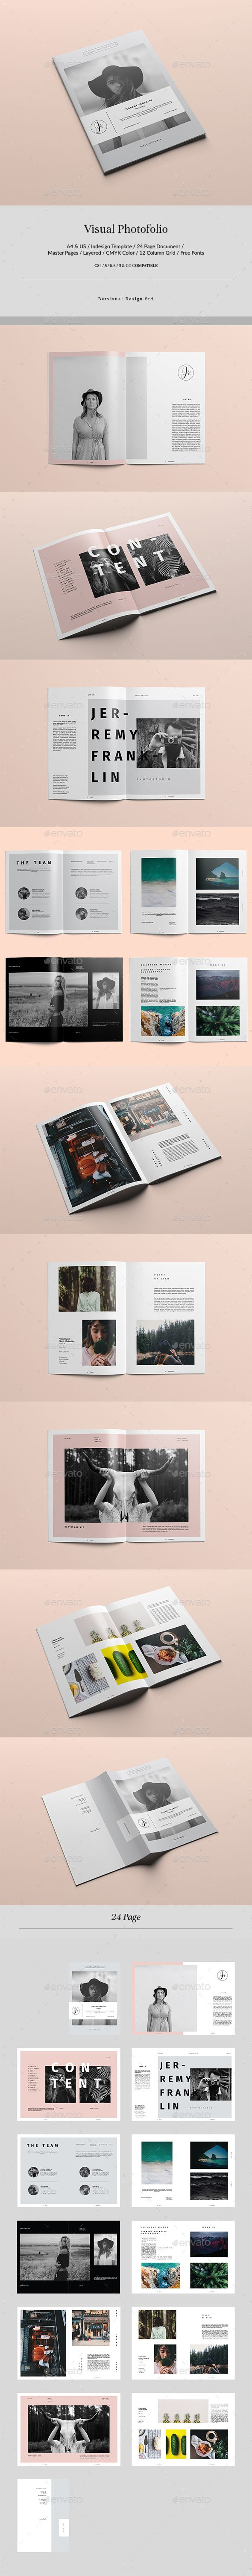 Visual Photofolio Brochure Template InDesign INDD - 24 Pages, A4 & US Letter Size